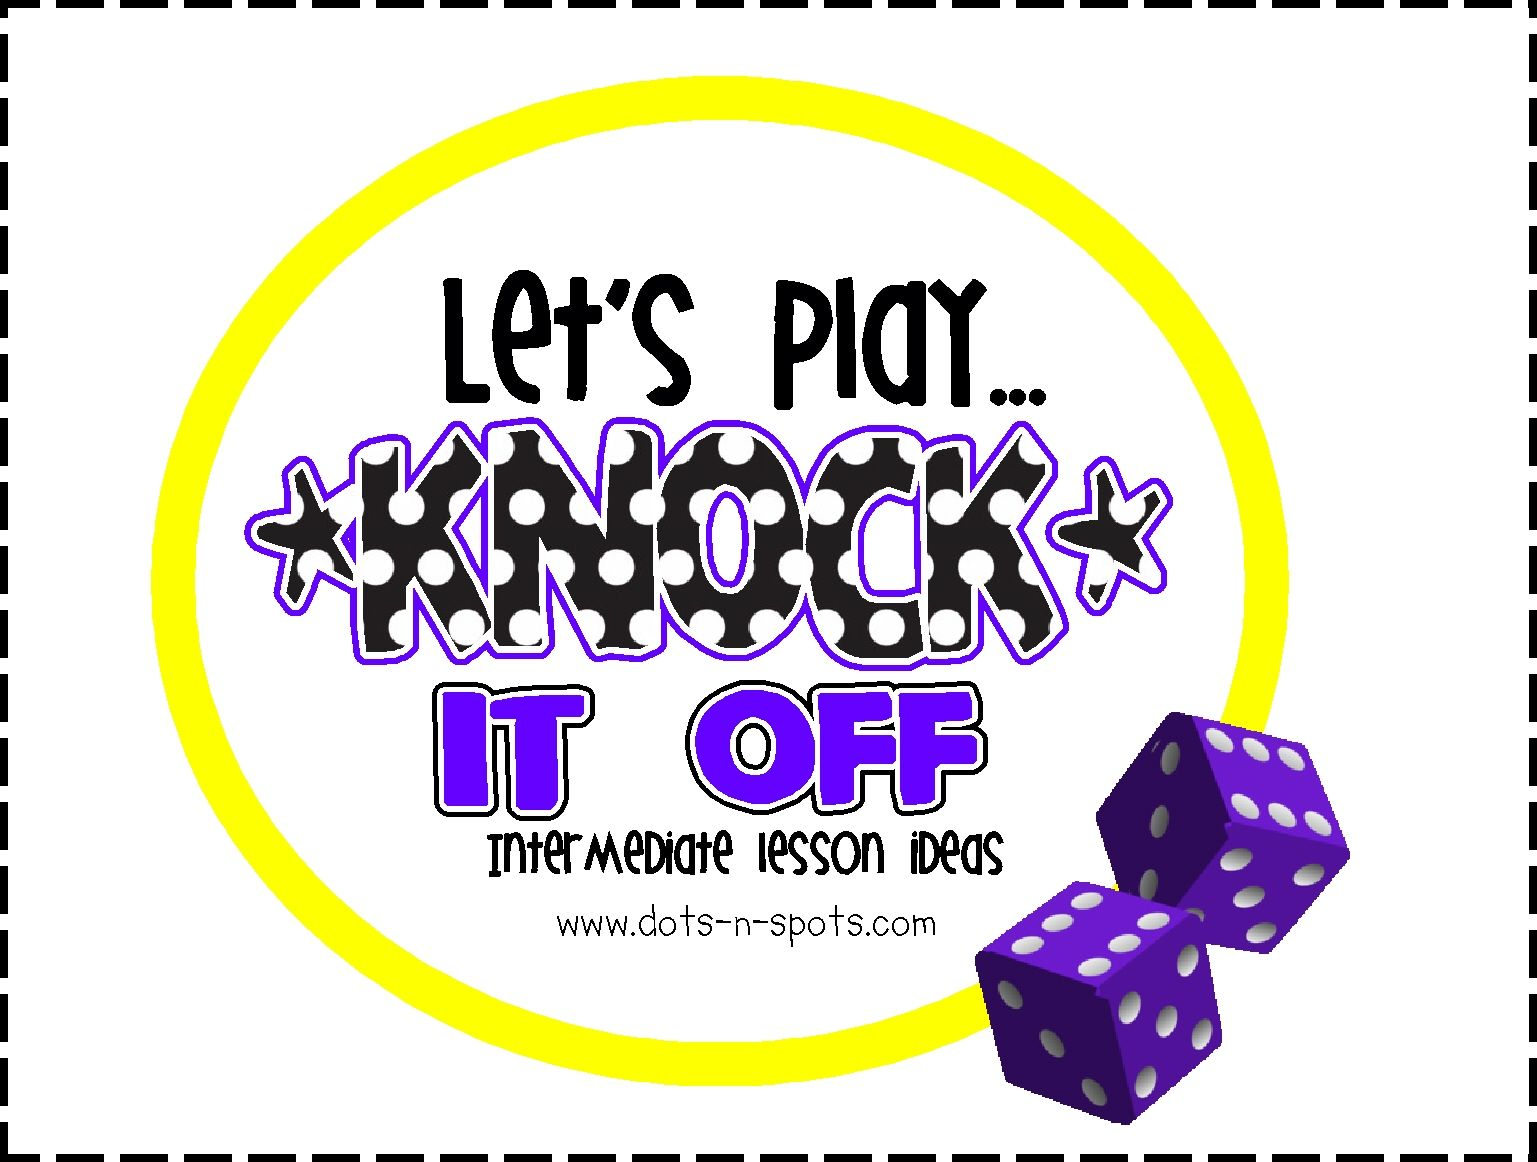 Knock It Off Math Game For Practicing Multiplication Facts Uses 12 Sided Dice Game Board